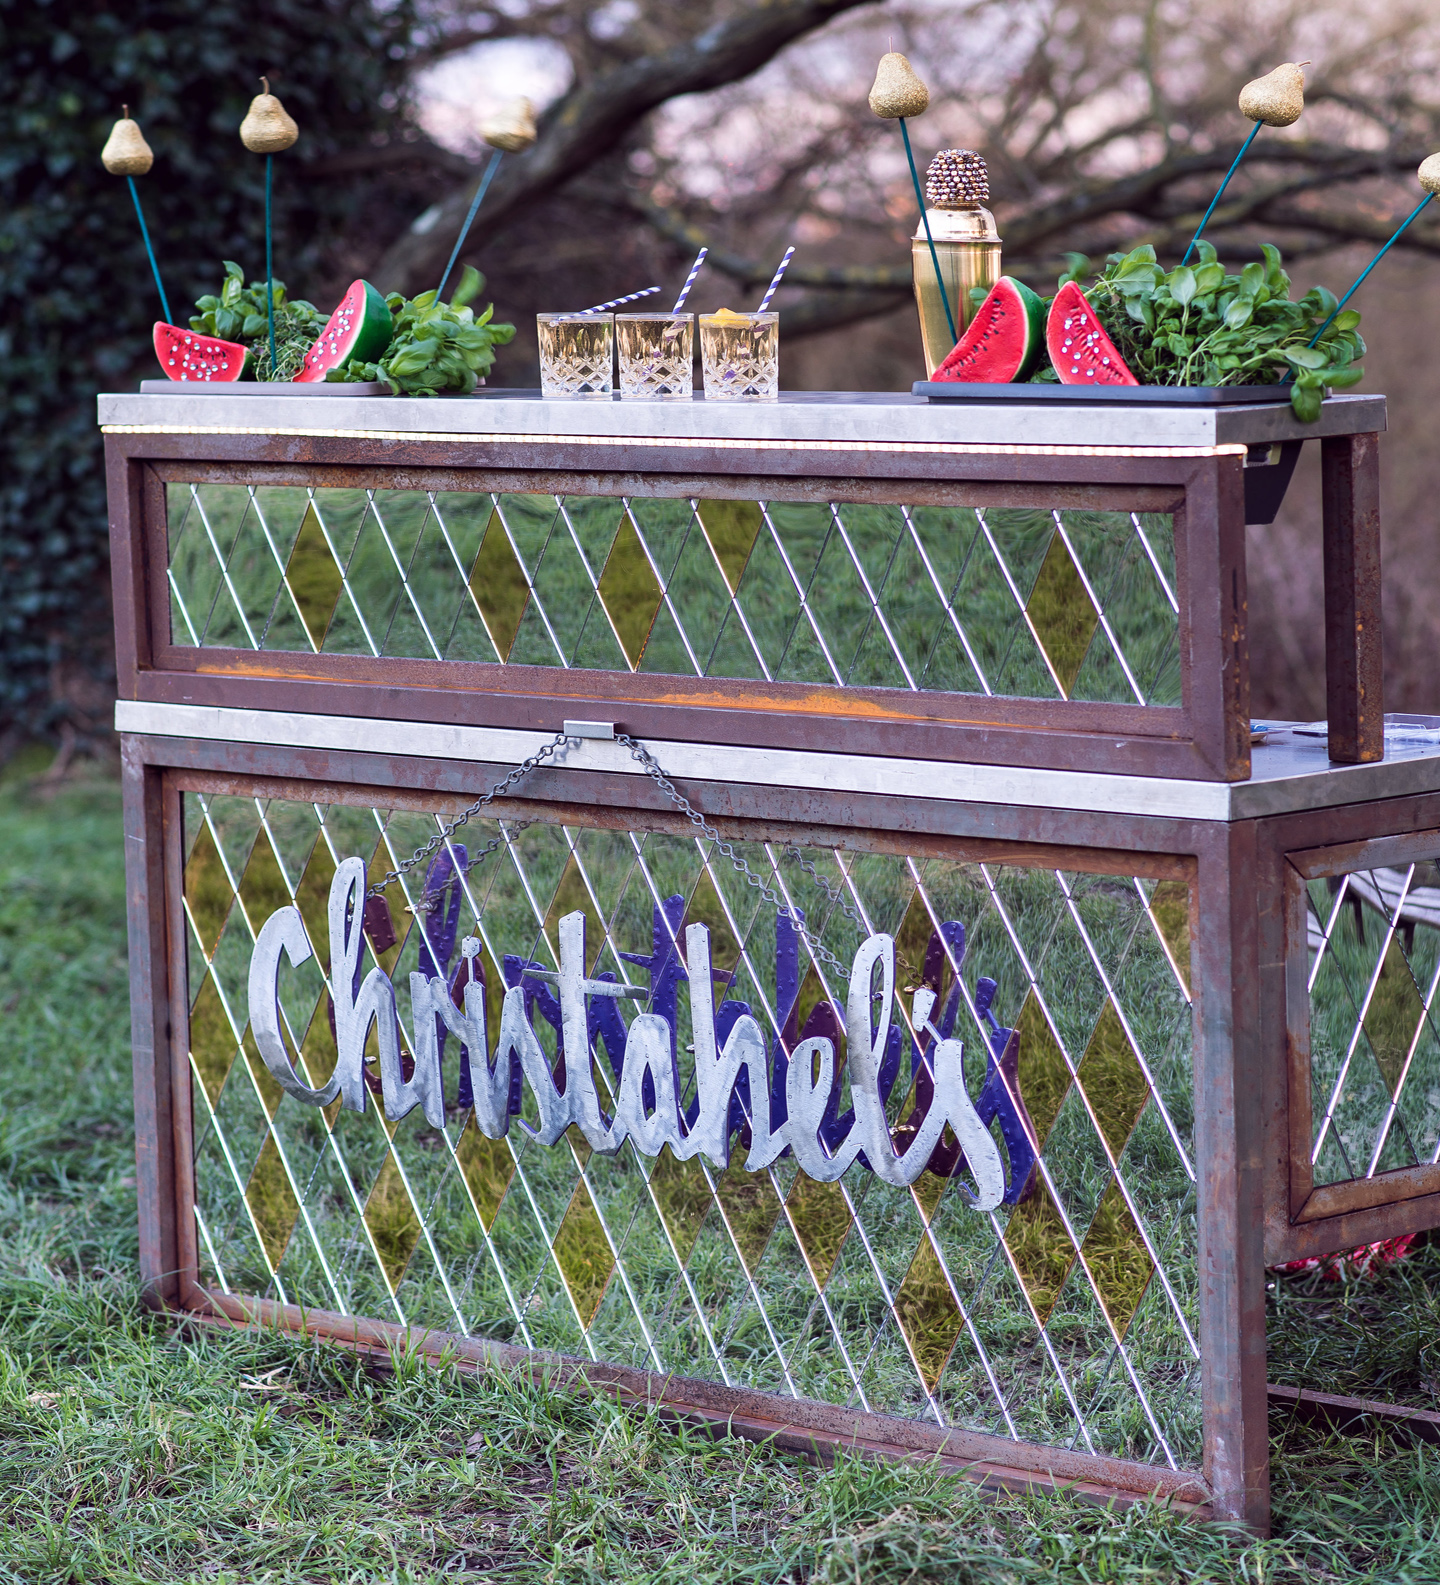 christabel's metal mobile cocktail bar